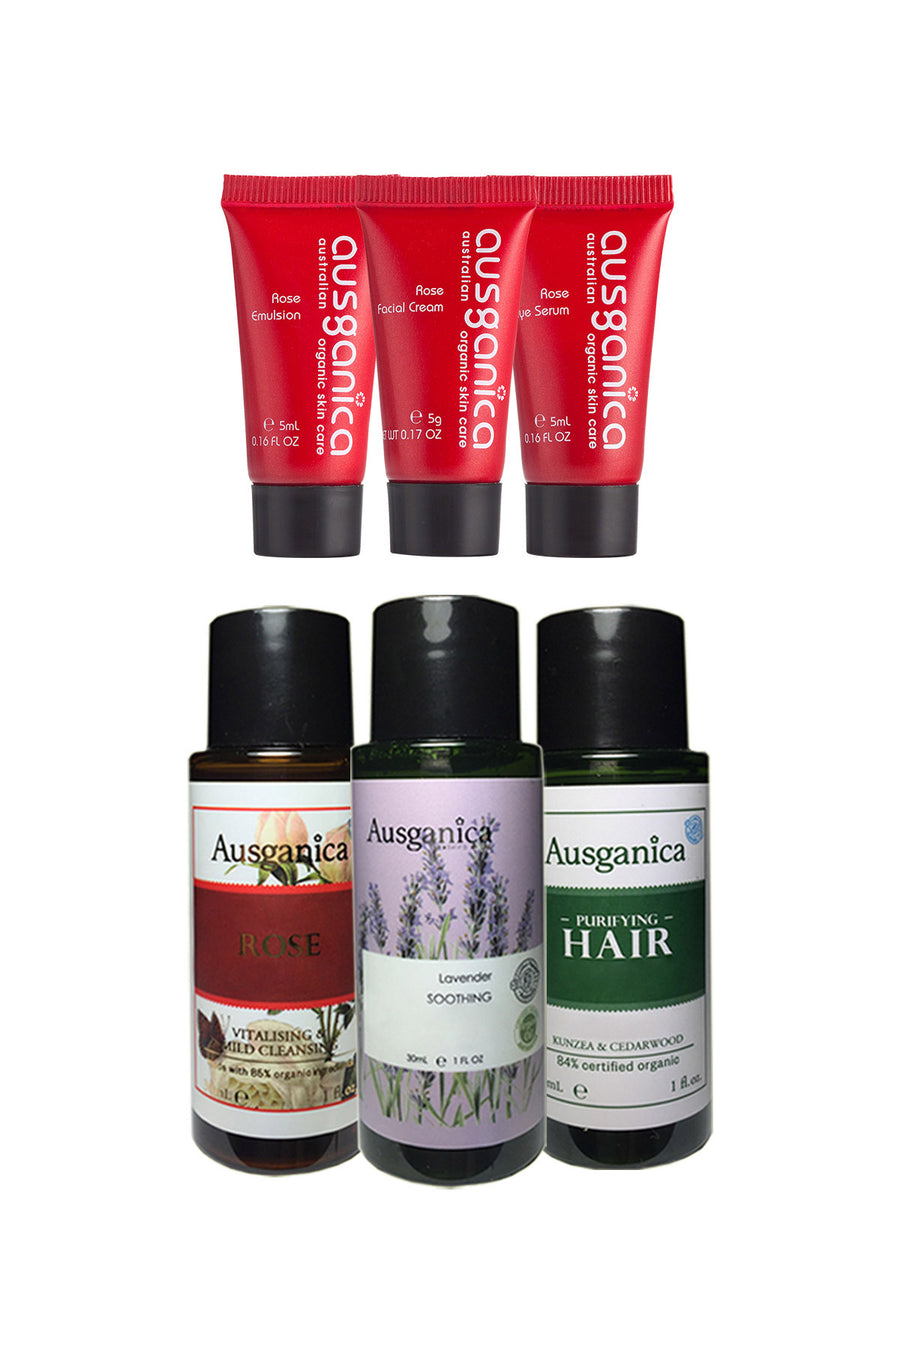 Try Ausganica 6 piece brand sample set of organic hair and skin products